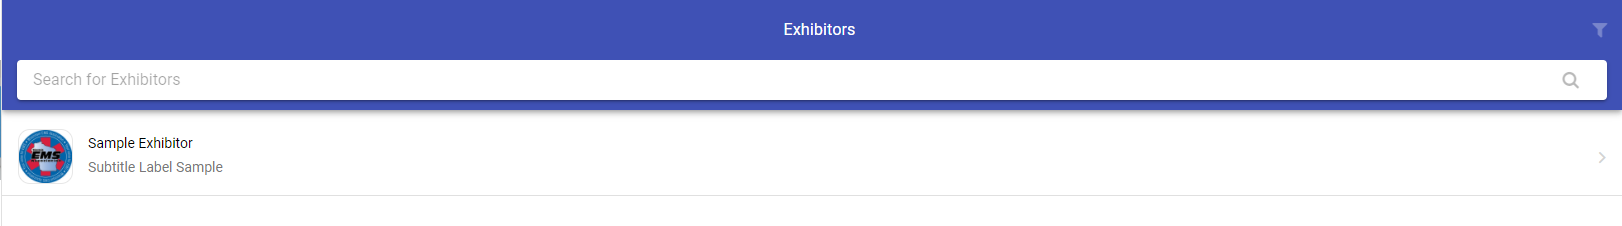 Sample Exhibitor Page